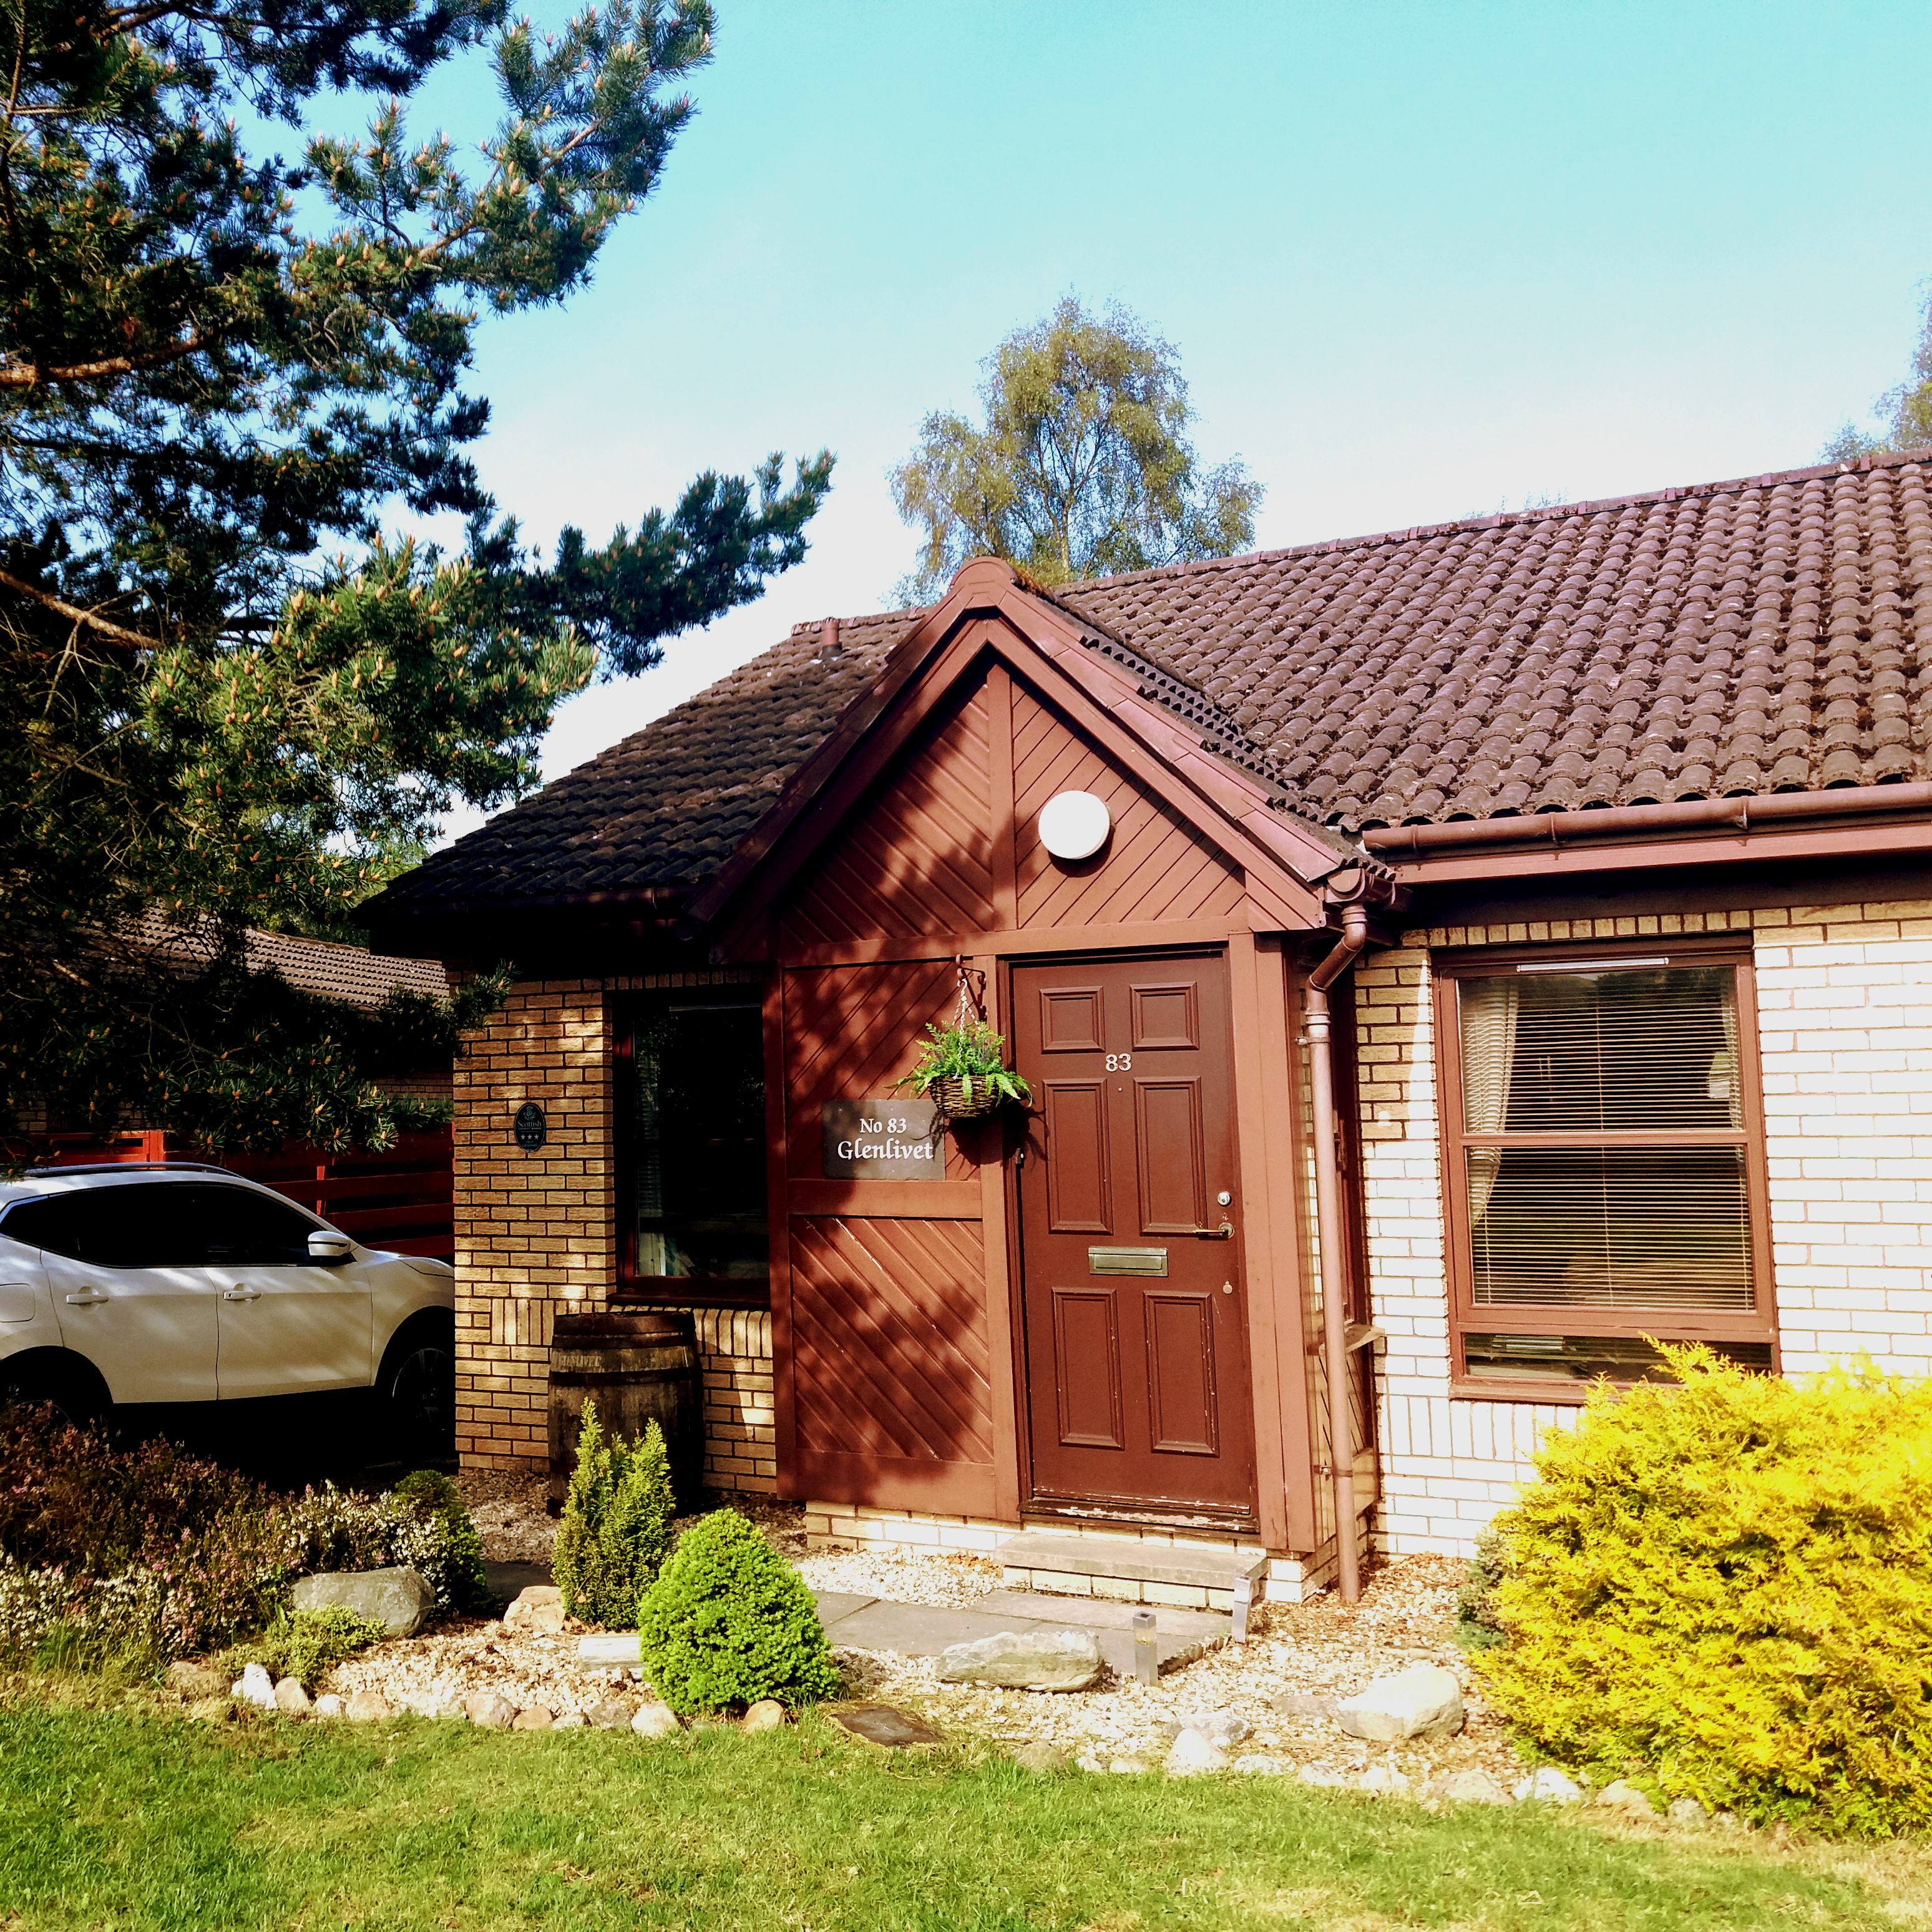 Self catering, 3 bedroom, 6 person, 10 mins to centre of Aviemore.